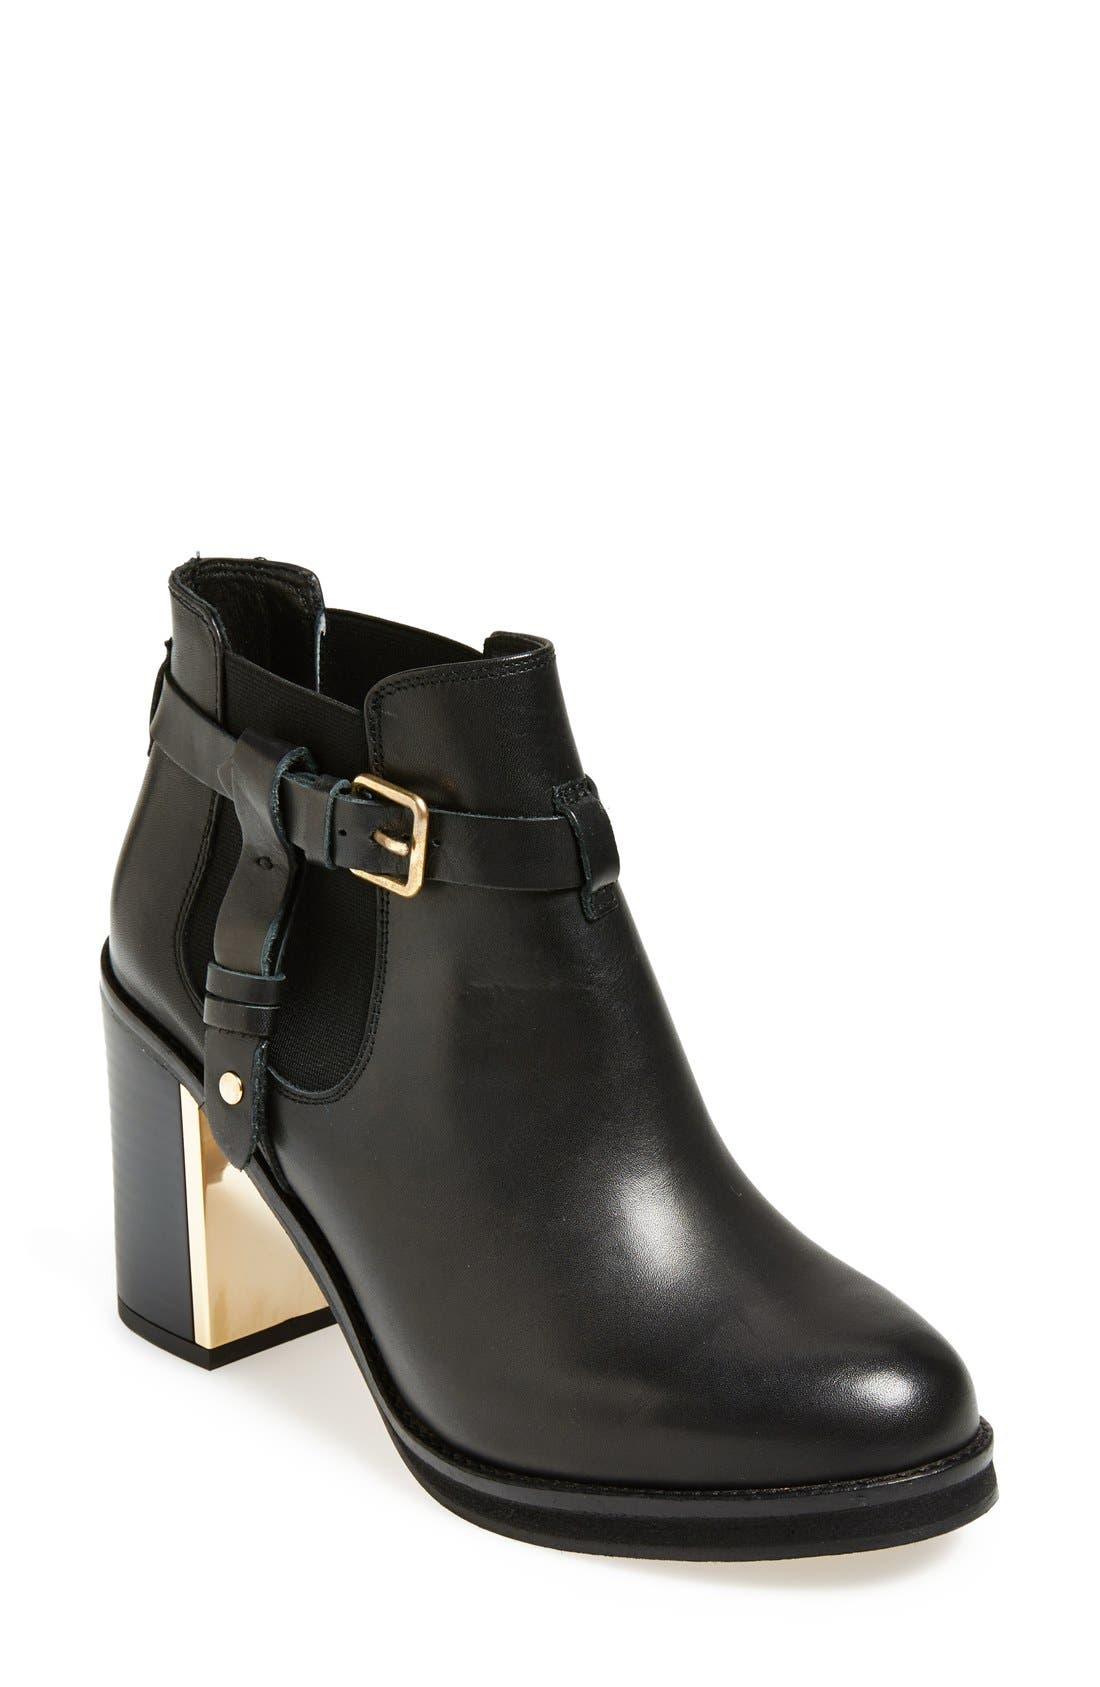 'Mine' Ankle Boot,                         Main,                         color, 001